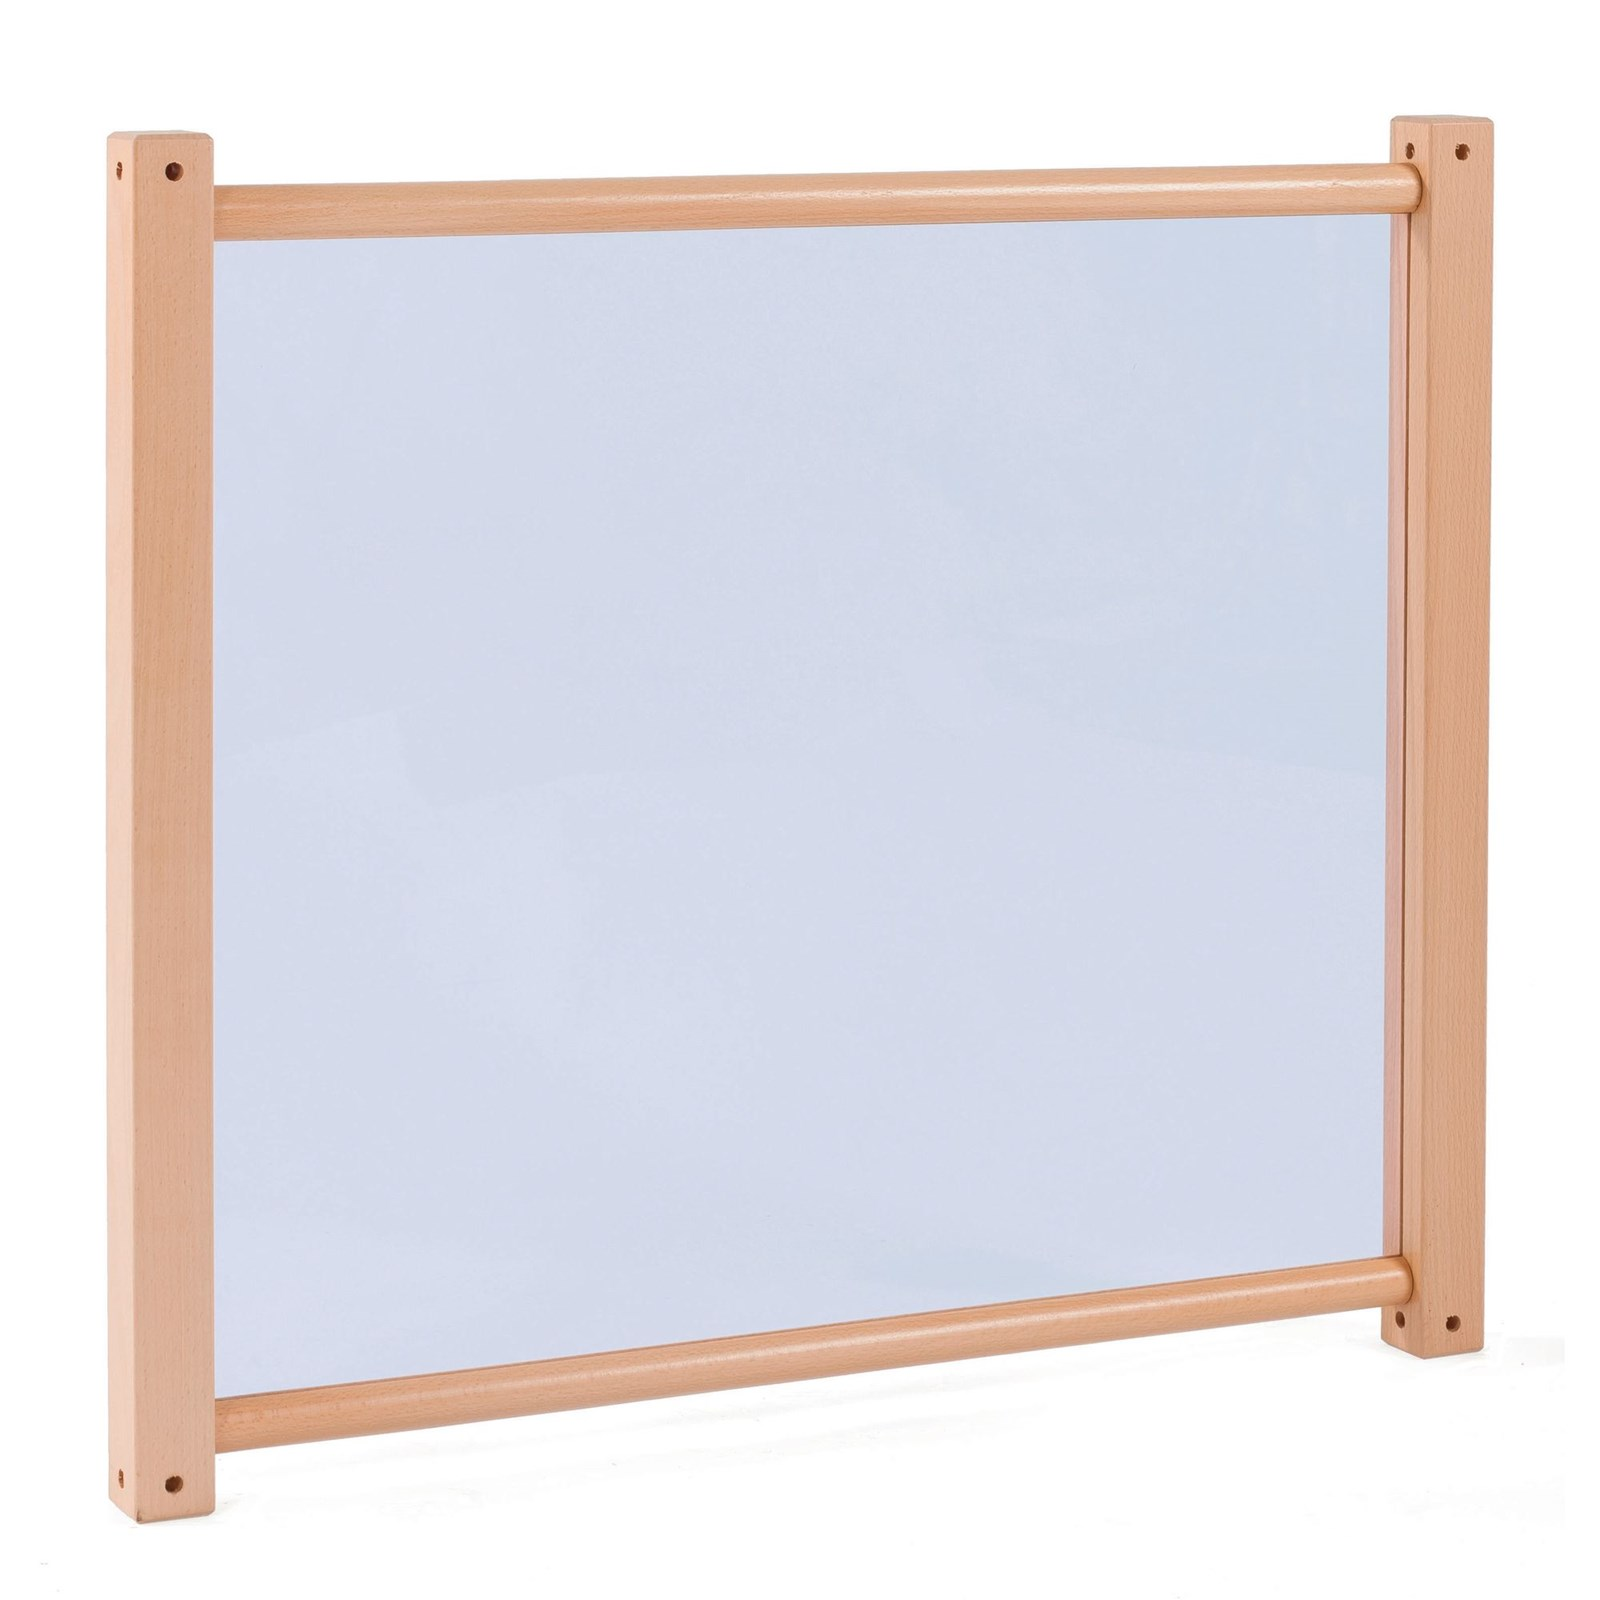 Playscapes Toddler Clear Panel